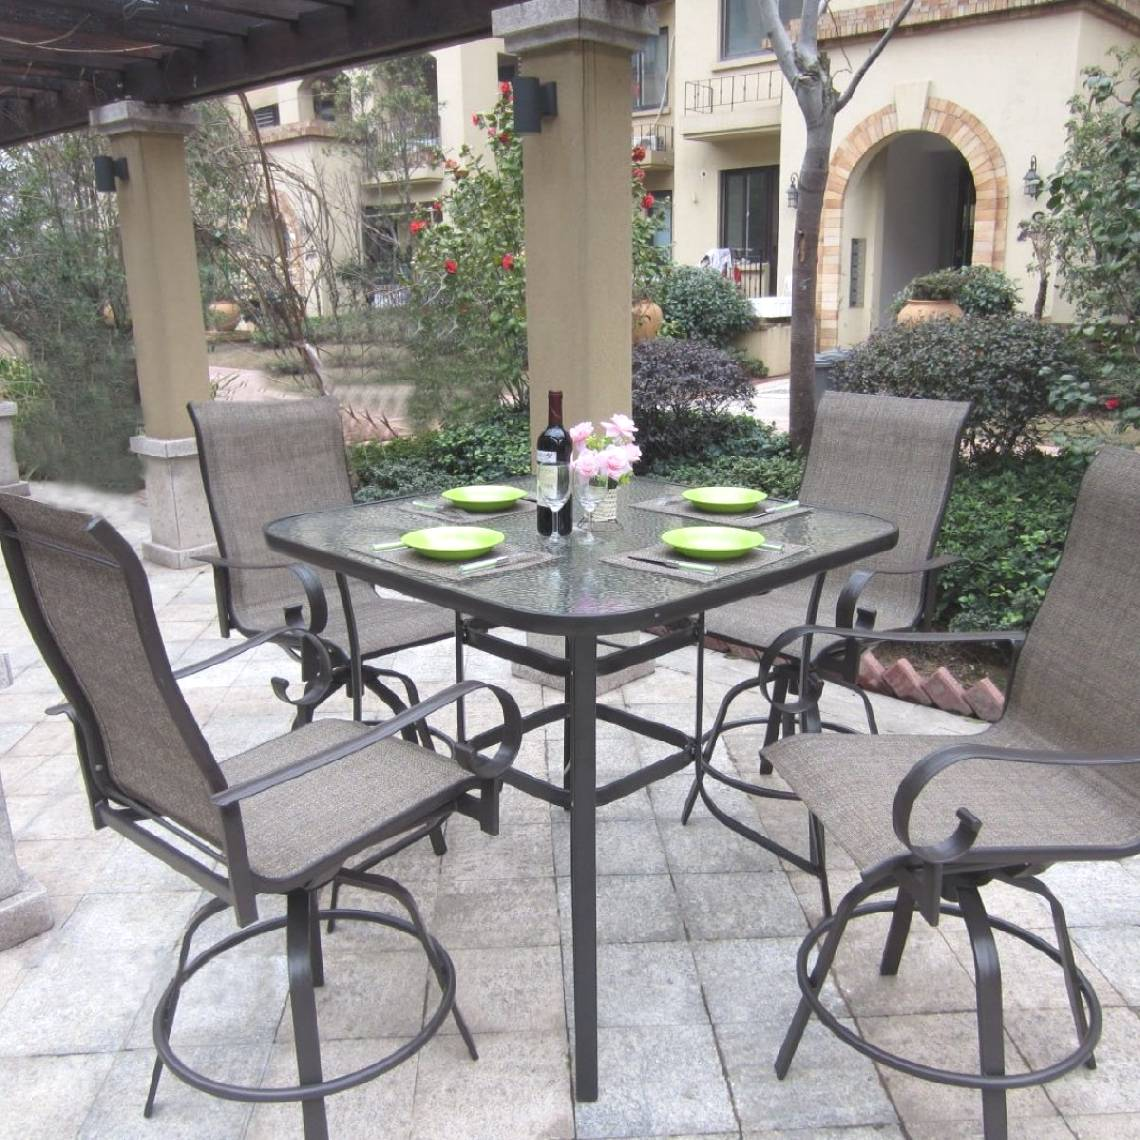 3 Piece Bar Height Patio Set | Bar Height Patio Sets | Wicker Bar Height Patio Set